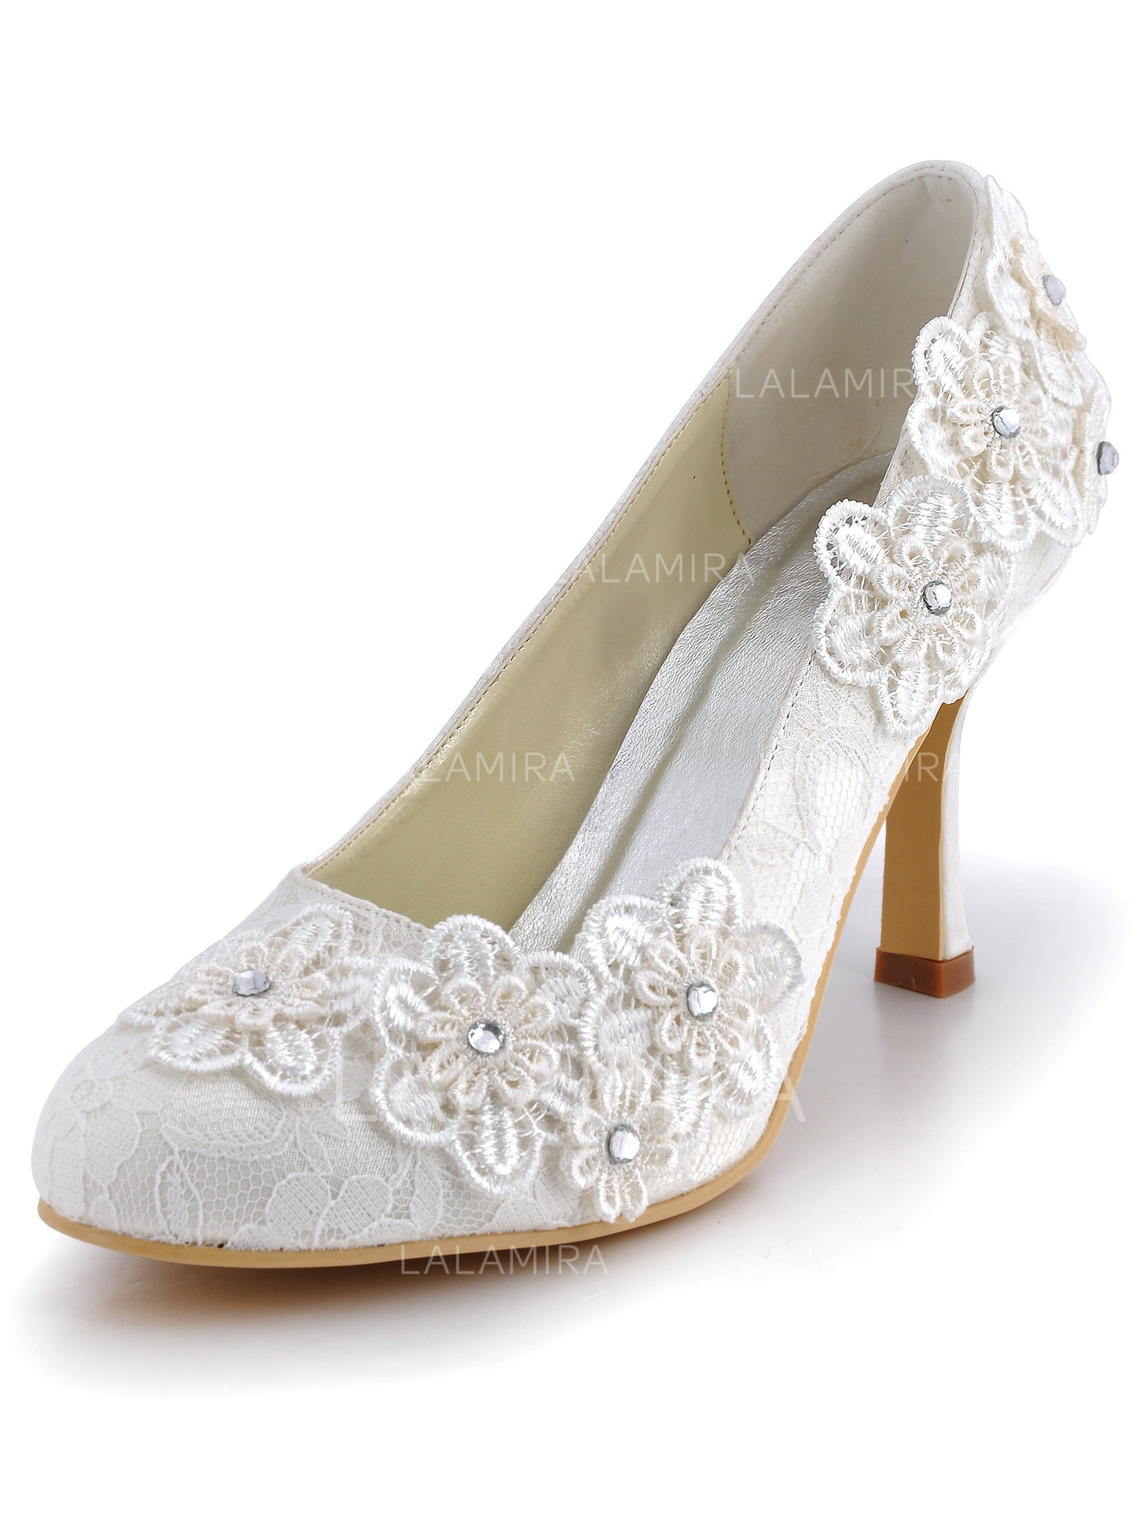 a05e93f30241 Women s Closed Toe Pumps Stiletto Heel Lace With Rhinestone Flower Wedding  Shoes (047203805). Loading zoom